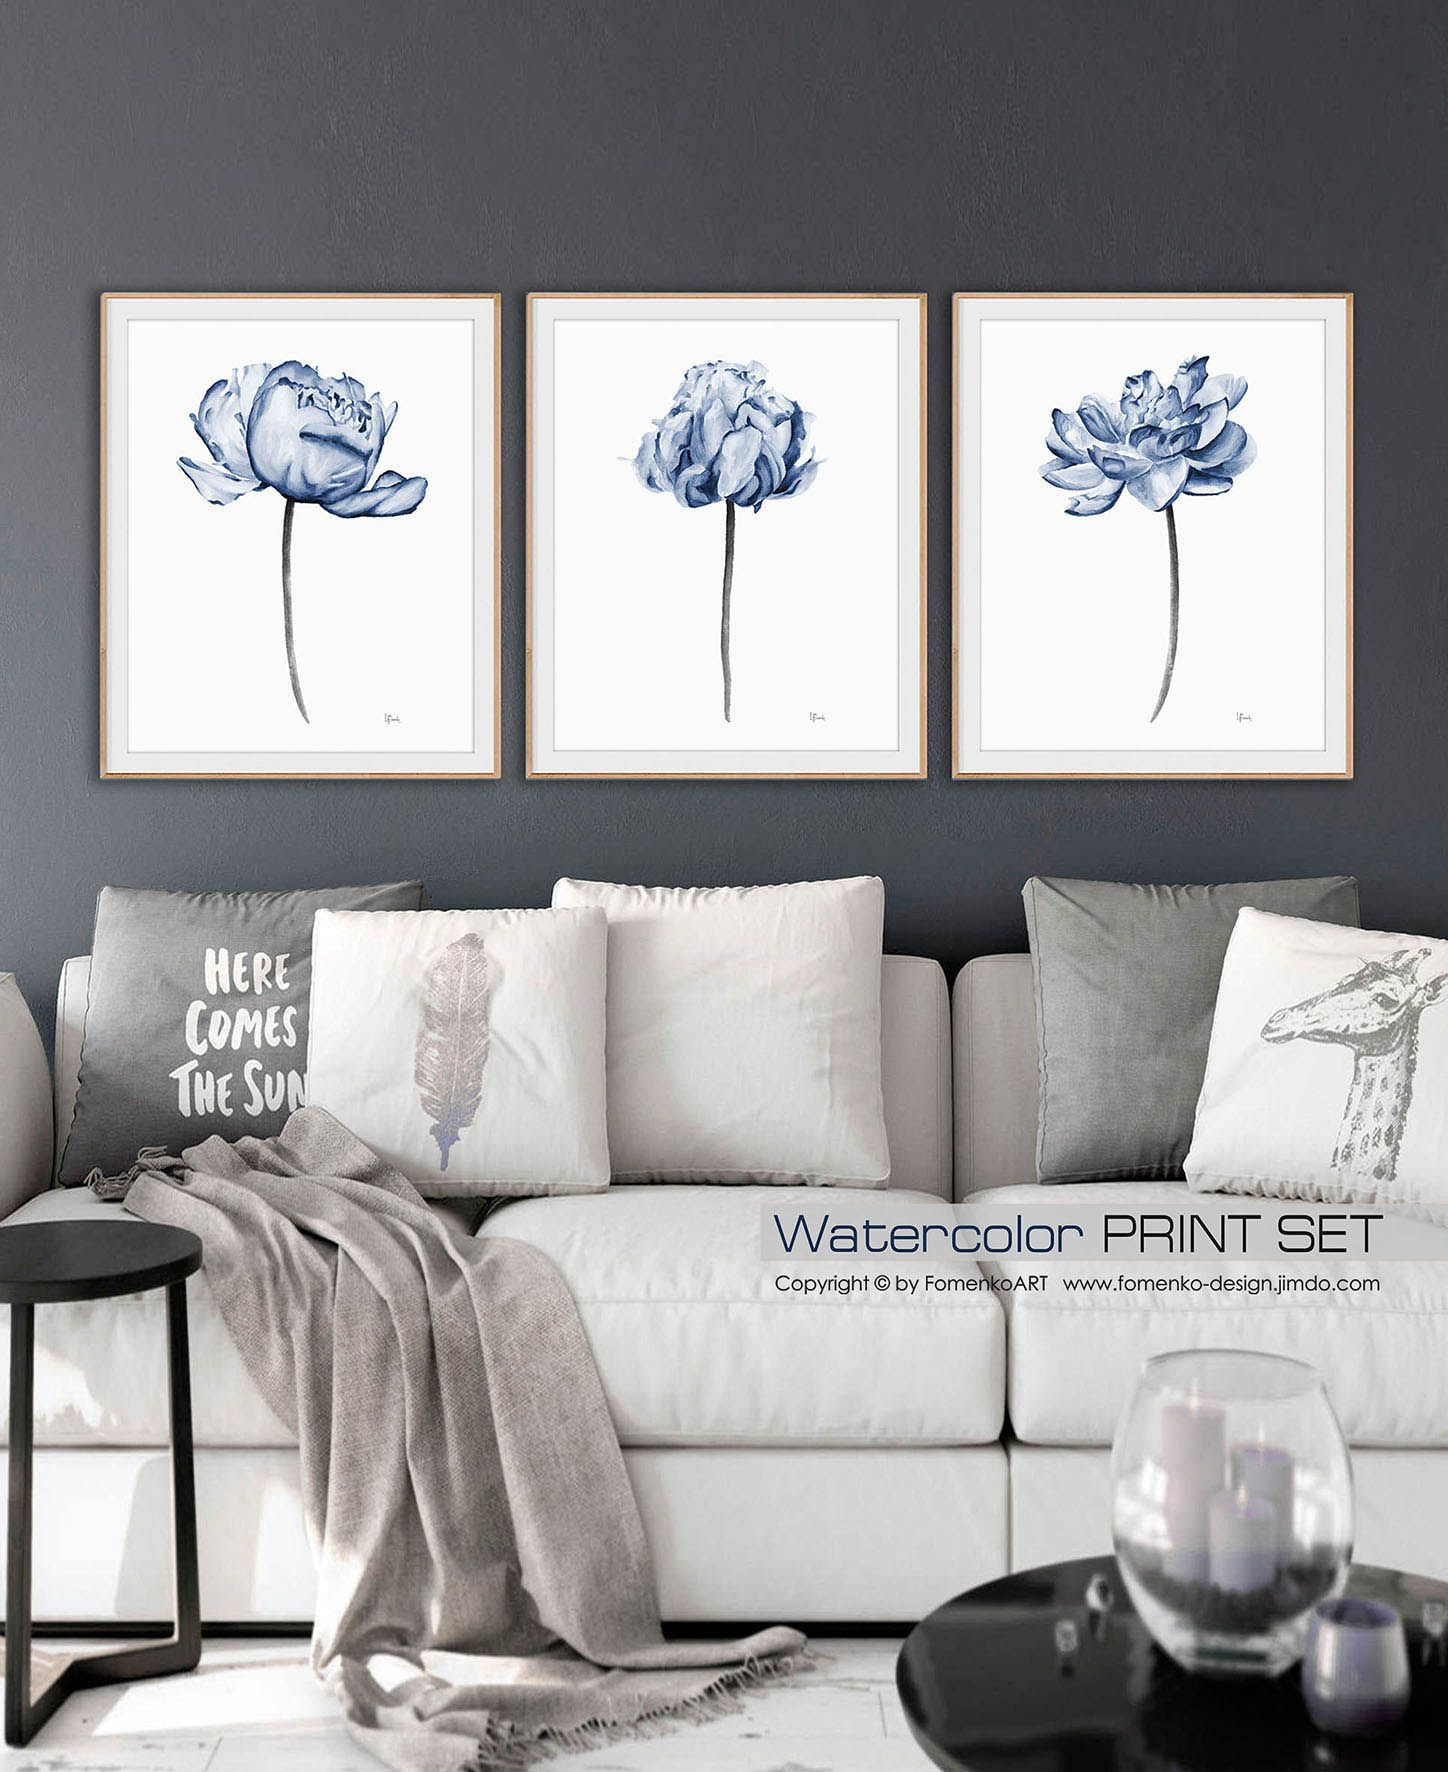 Most Recently Released 2 Piece Heart Shaped Fan Wall Decor Sets With Regard To Watercolor Painting Rustic Wall Decor Kitchen Wall Decor Living Room (View 12 of 20)